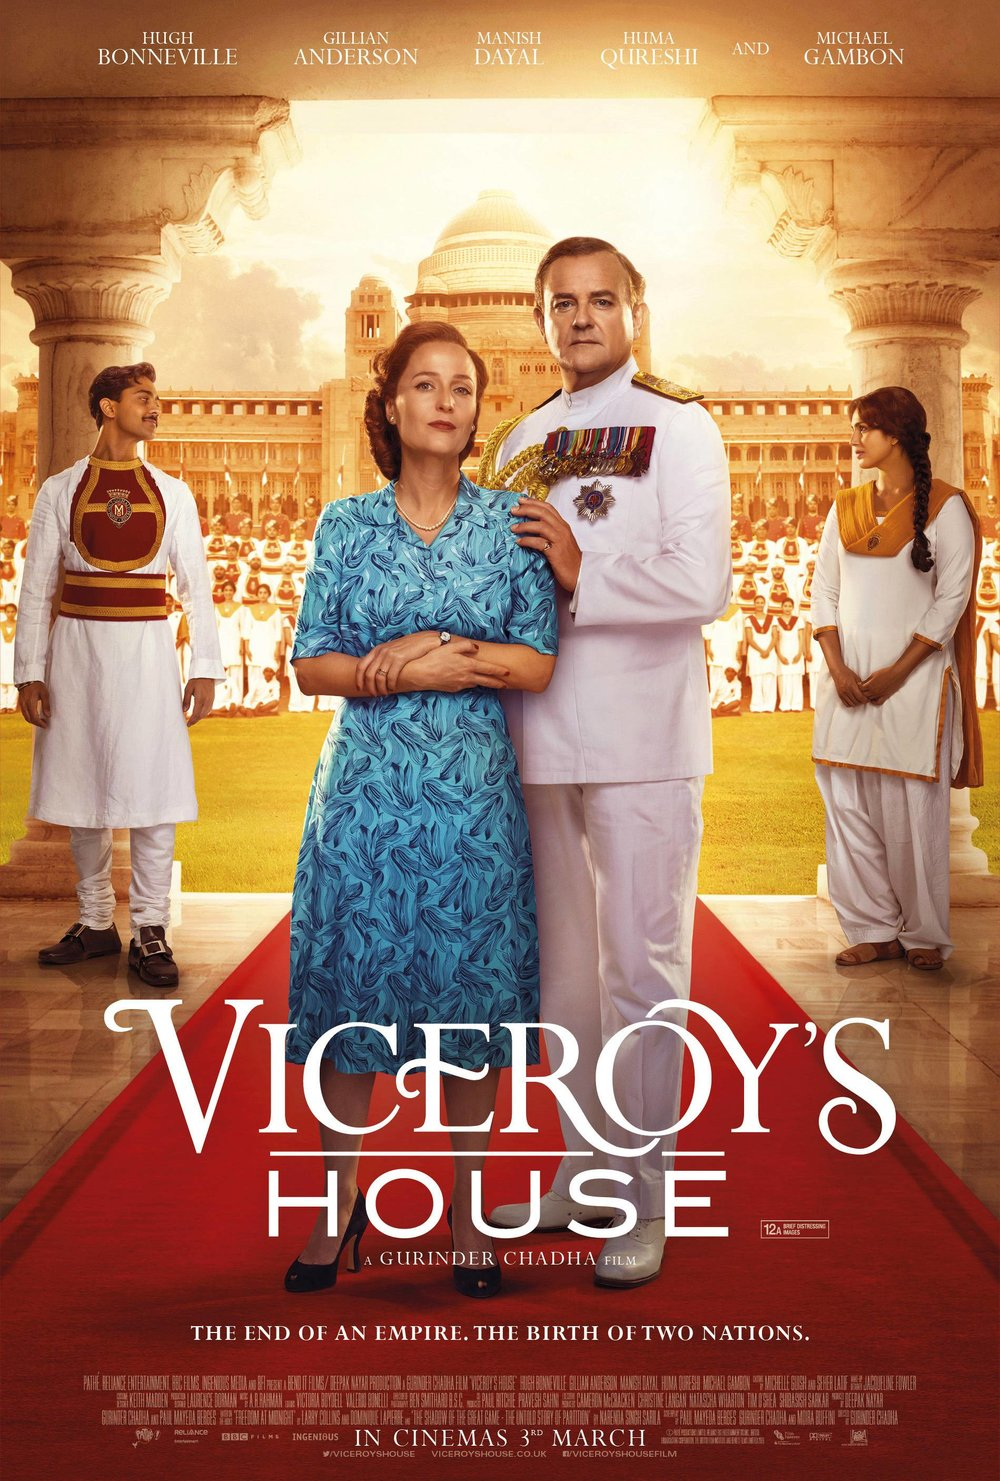 Viceroys-House-Poster-2.jpg